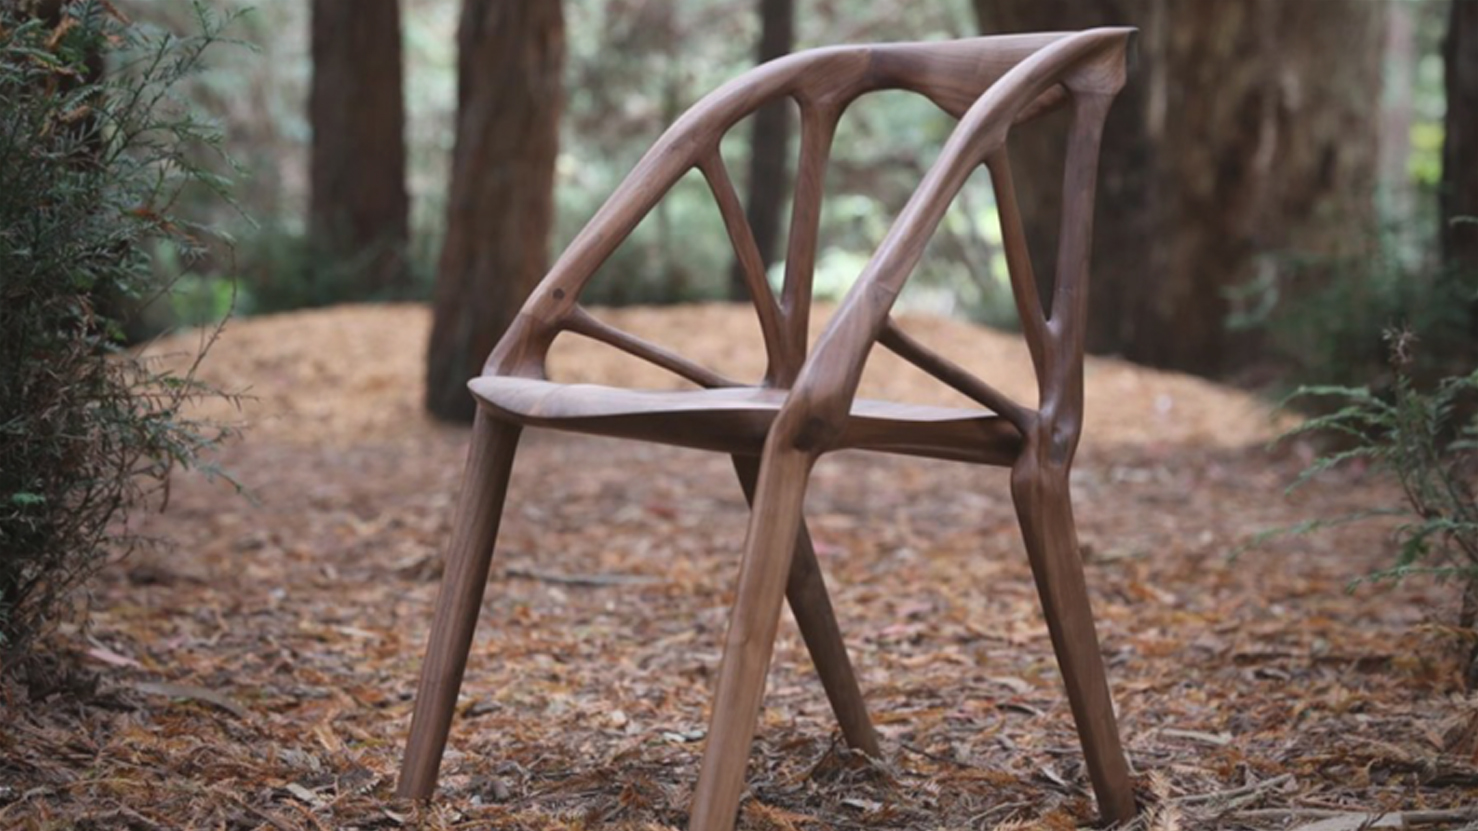 A chair design that's generated by software